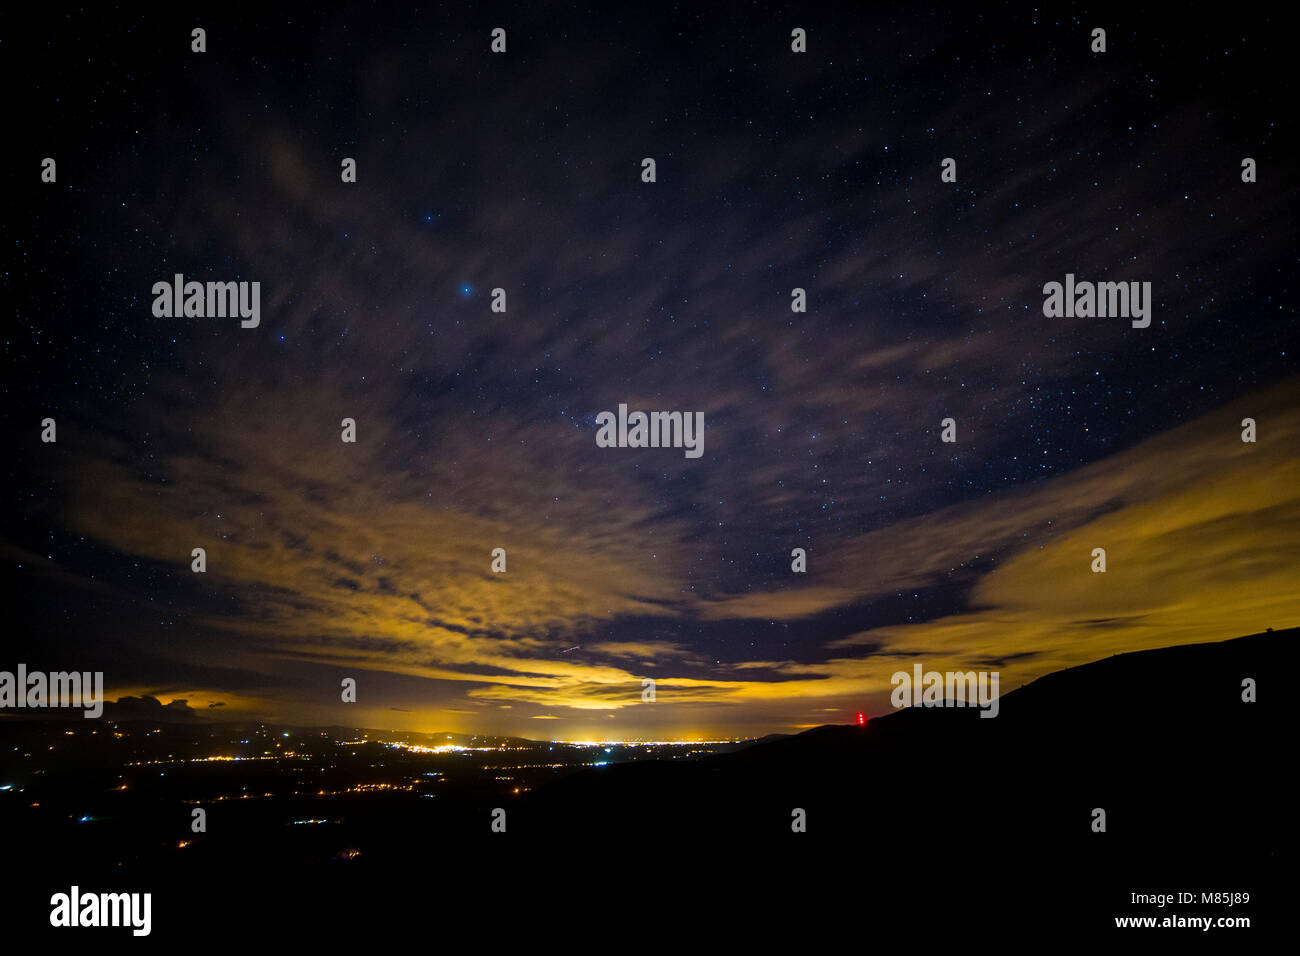 Stars over the Vale of Clwyd at night, North Wales - Stock Image